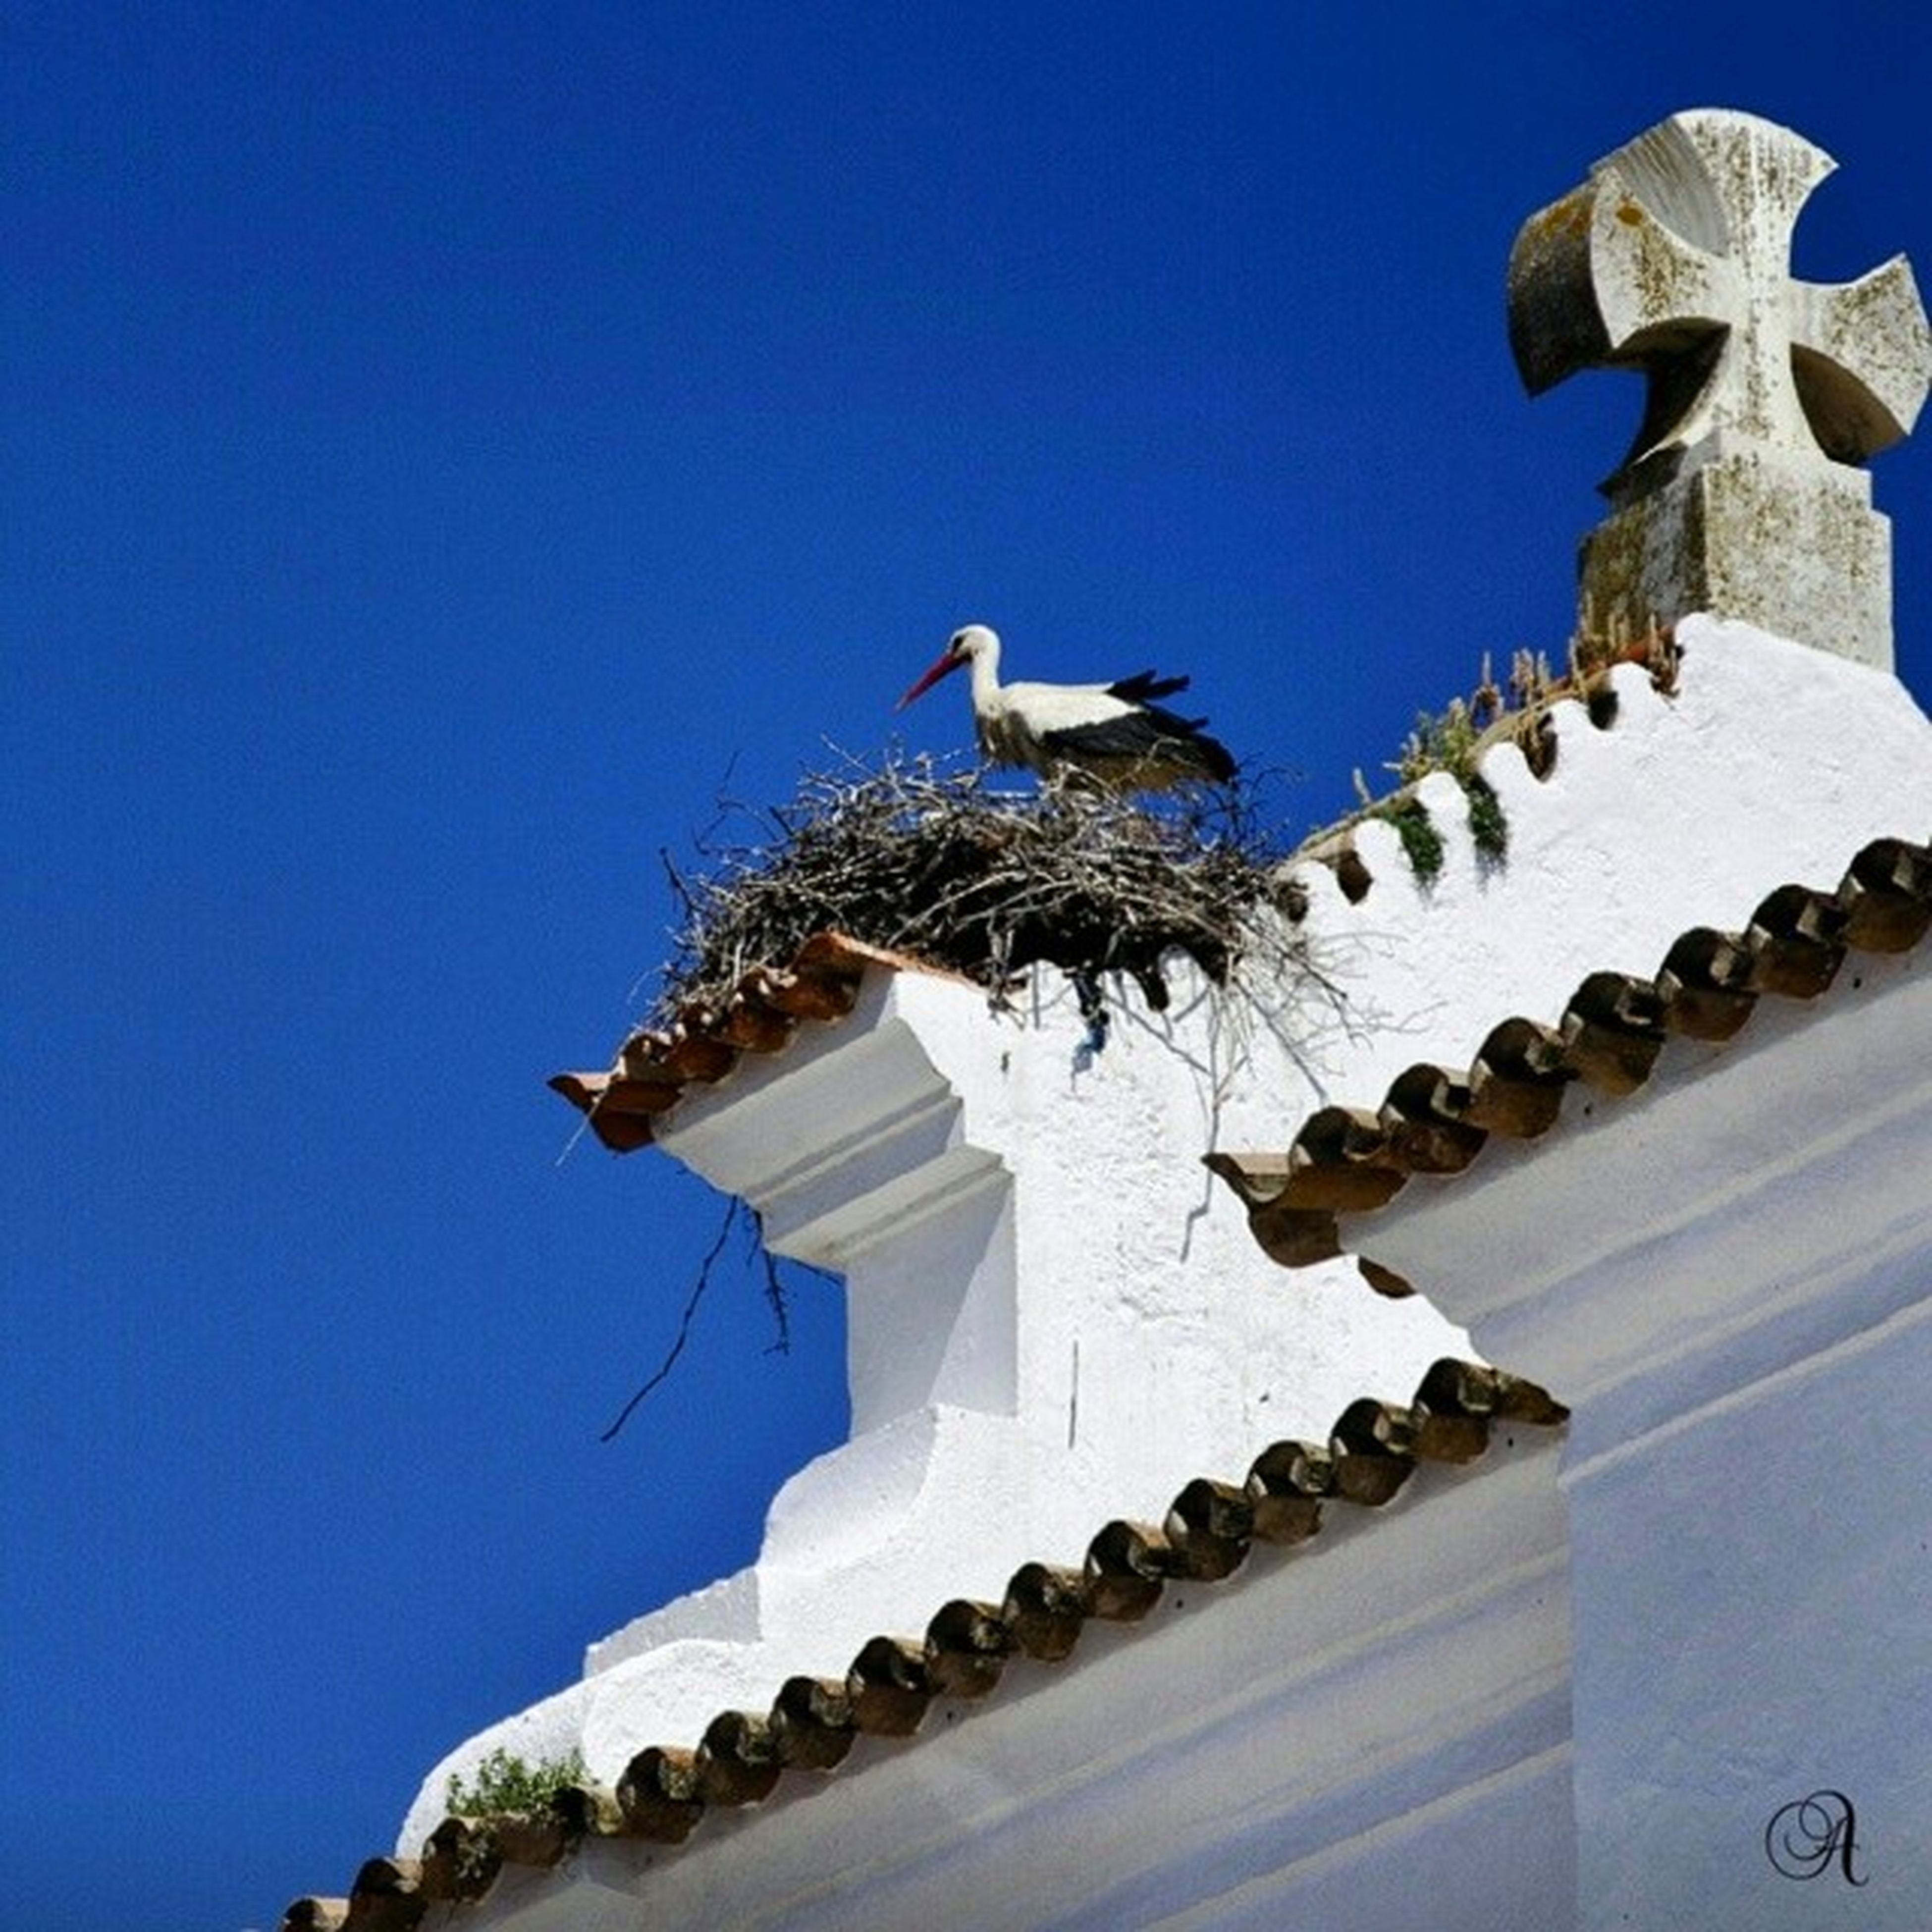 bird, animal themes, clear sky, blue, animals in the wild, low angle view, architecture, built structure, wildlife, building exterior, flying, copy space, seagull, roof, one animal, day, perching, pigeon, flock of birds